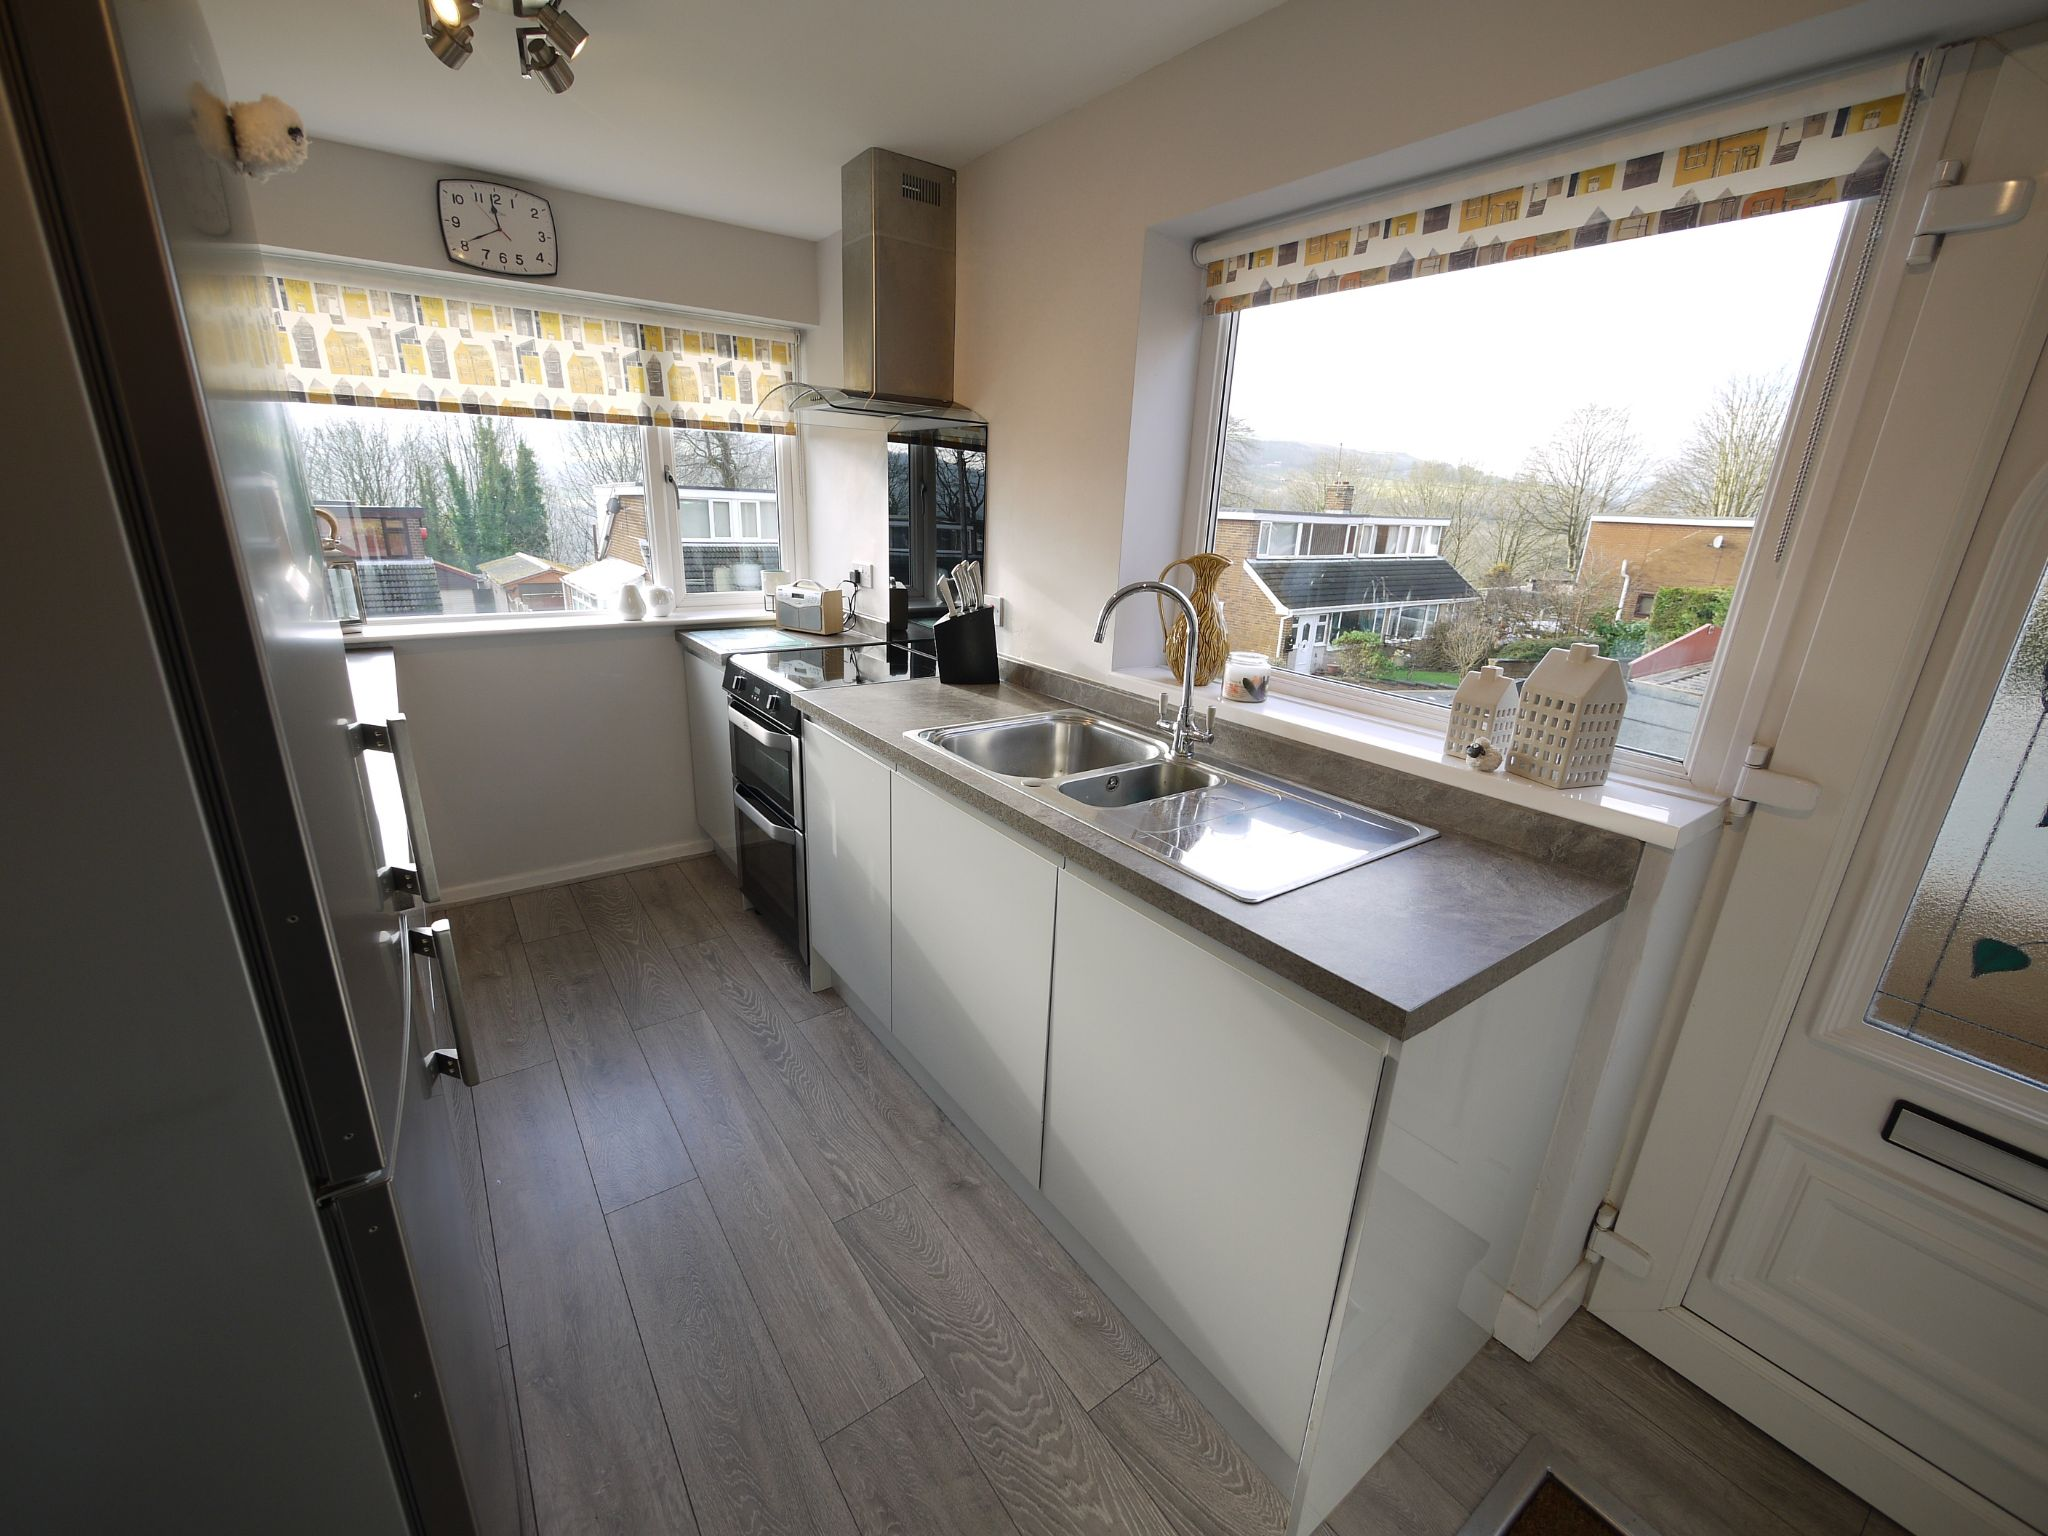 3 bedroom semi-detached house SSTC in Halifax - kitchen2.